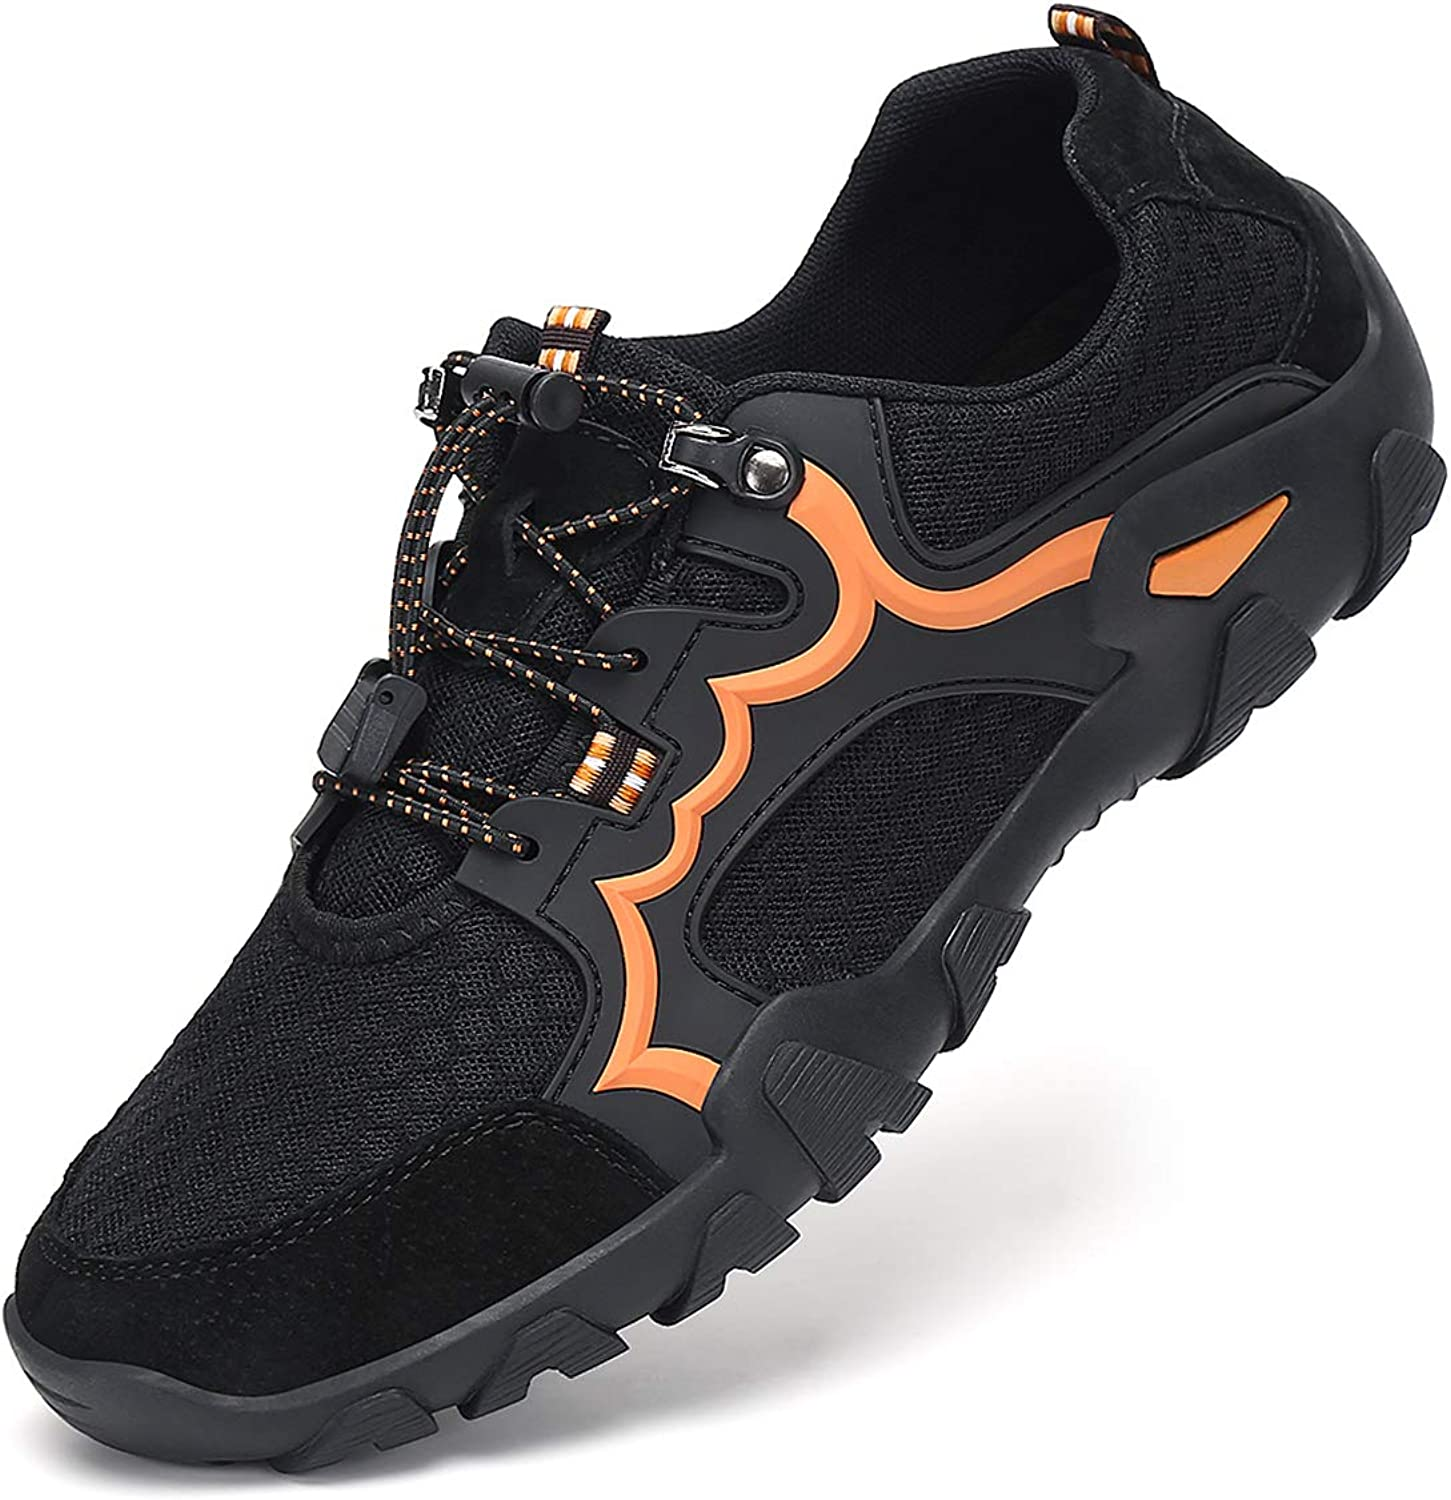 Amazon.com | AFFINEST Mens Hiking Shoes Breathable Mesh Lightweight Water  Shoes Quick Drying Sandals Walking Barefoot Outdoor Non Slip Training  Sneakers | Water Shoes